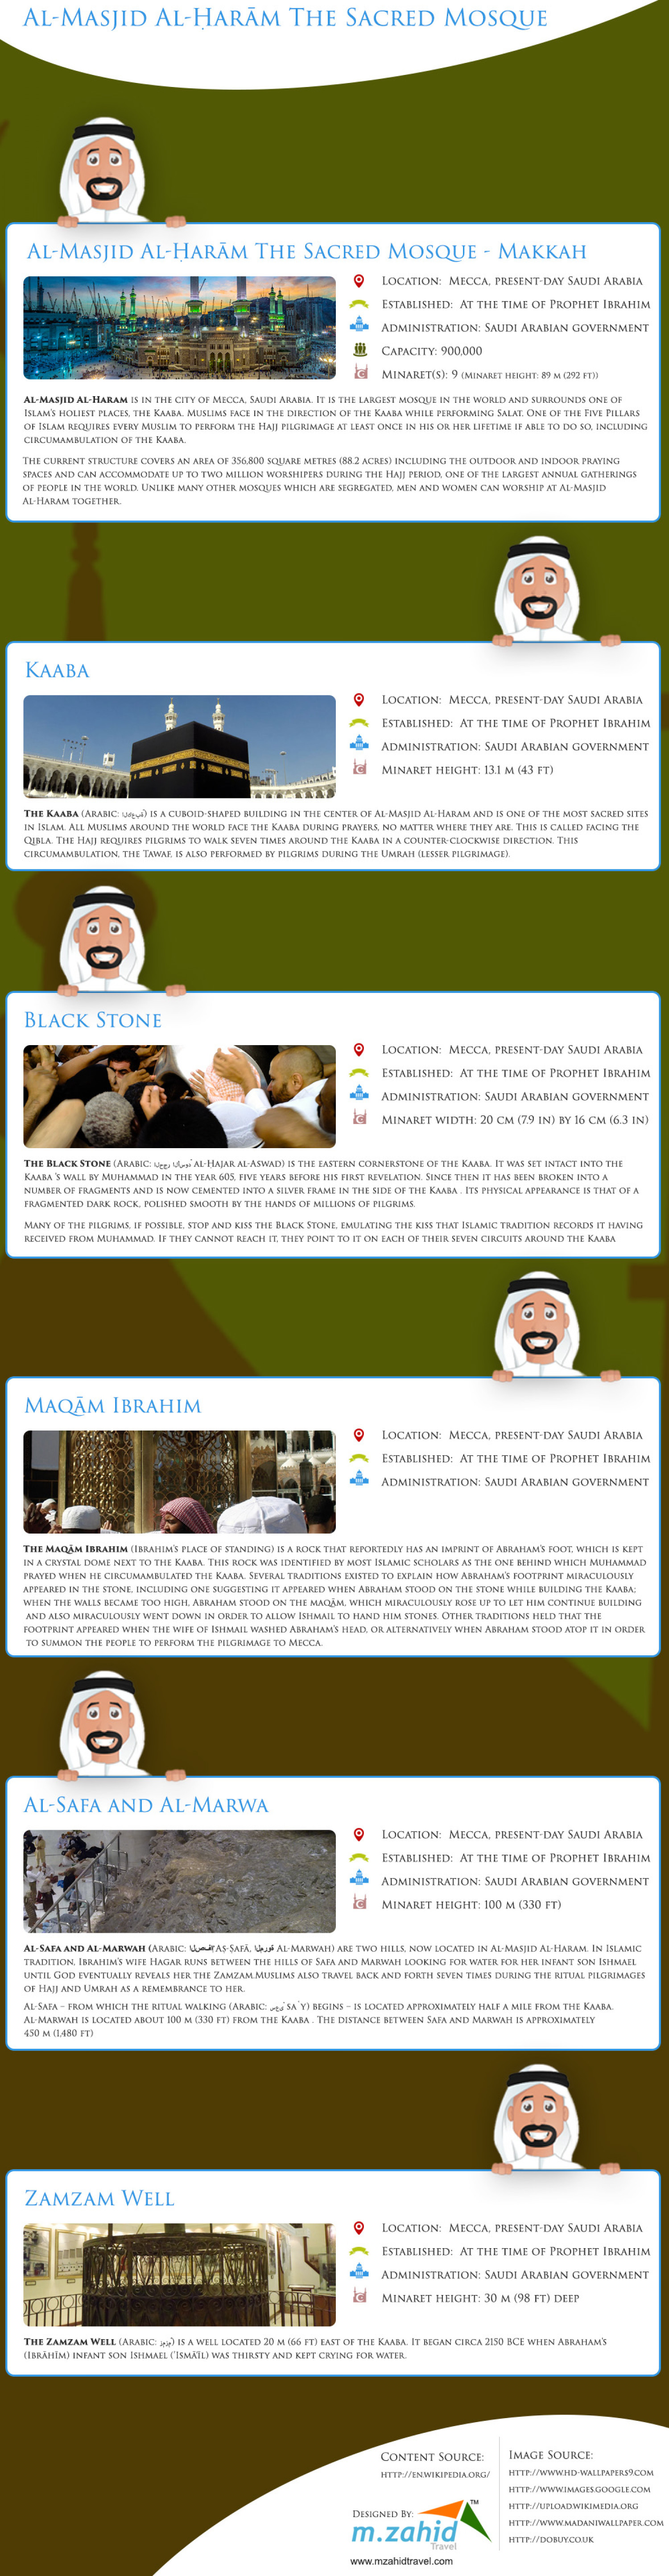 Al-Masjid Al-Haram The Sacred Mosque Infographic